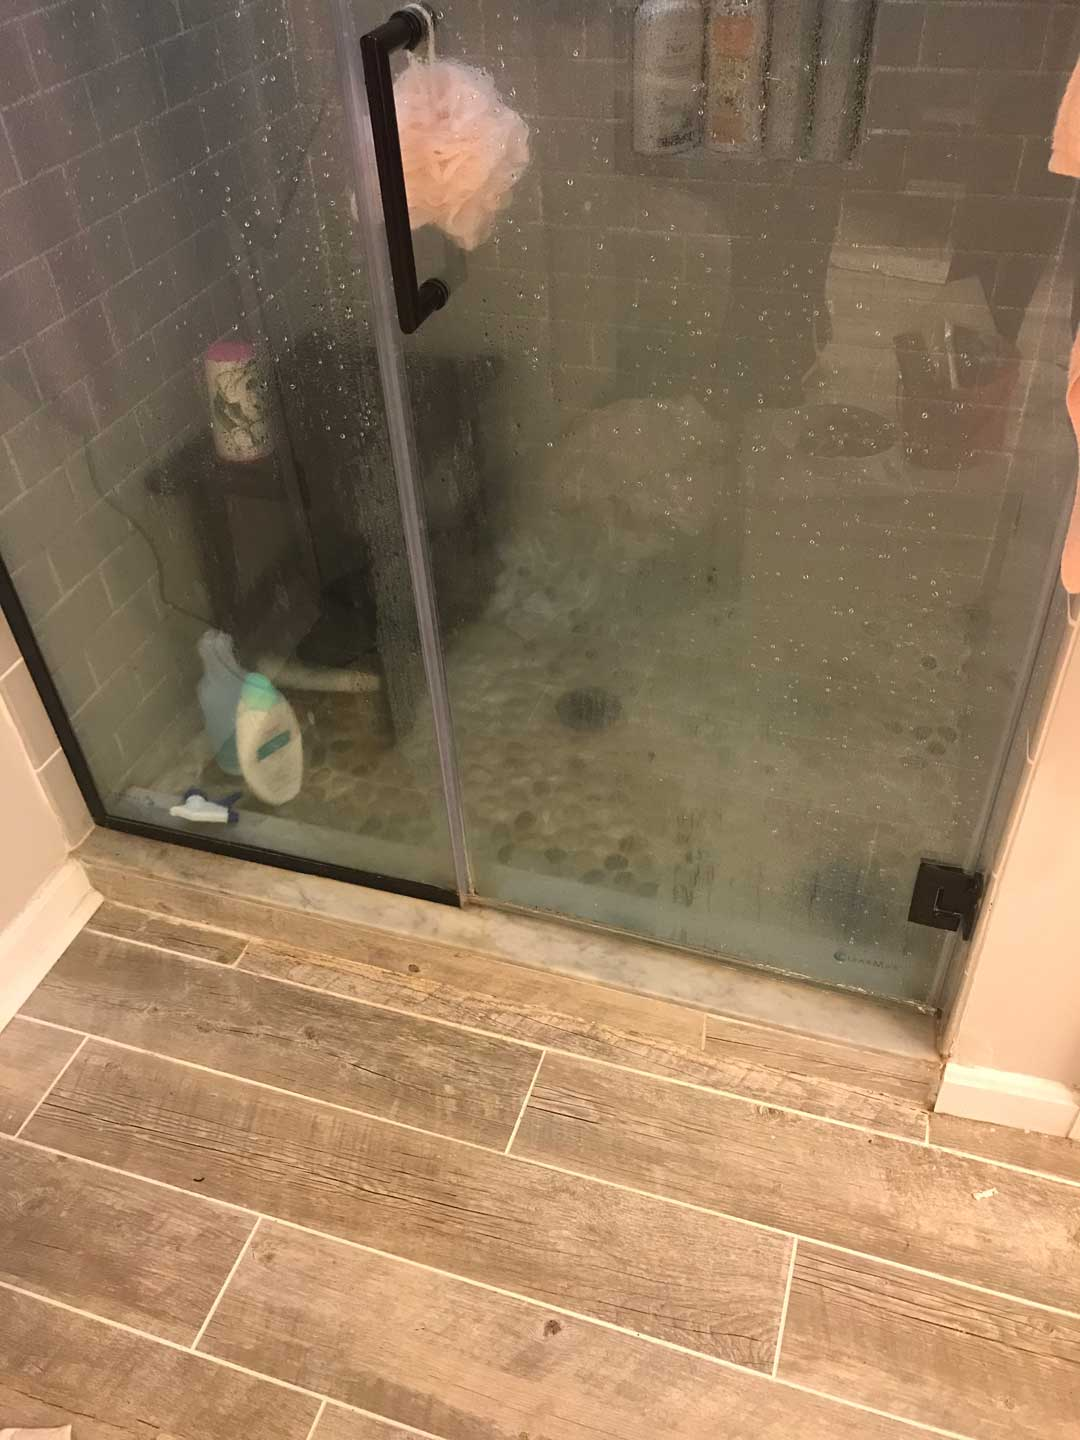 Shower with a leak